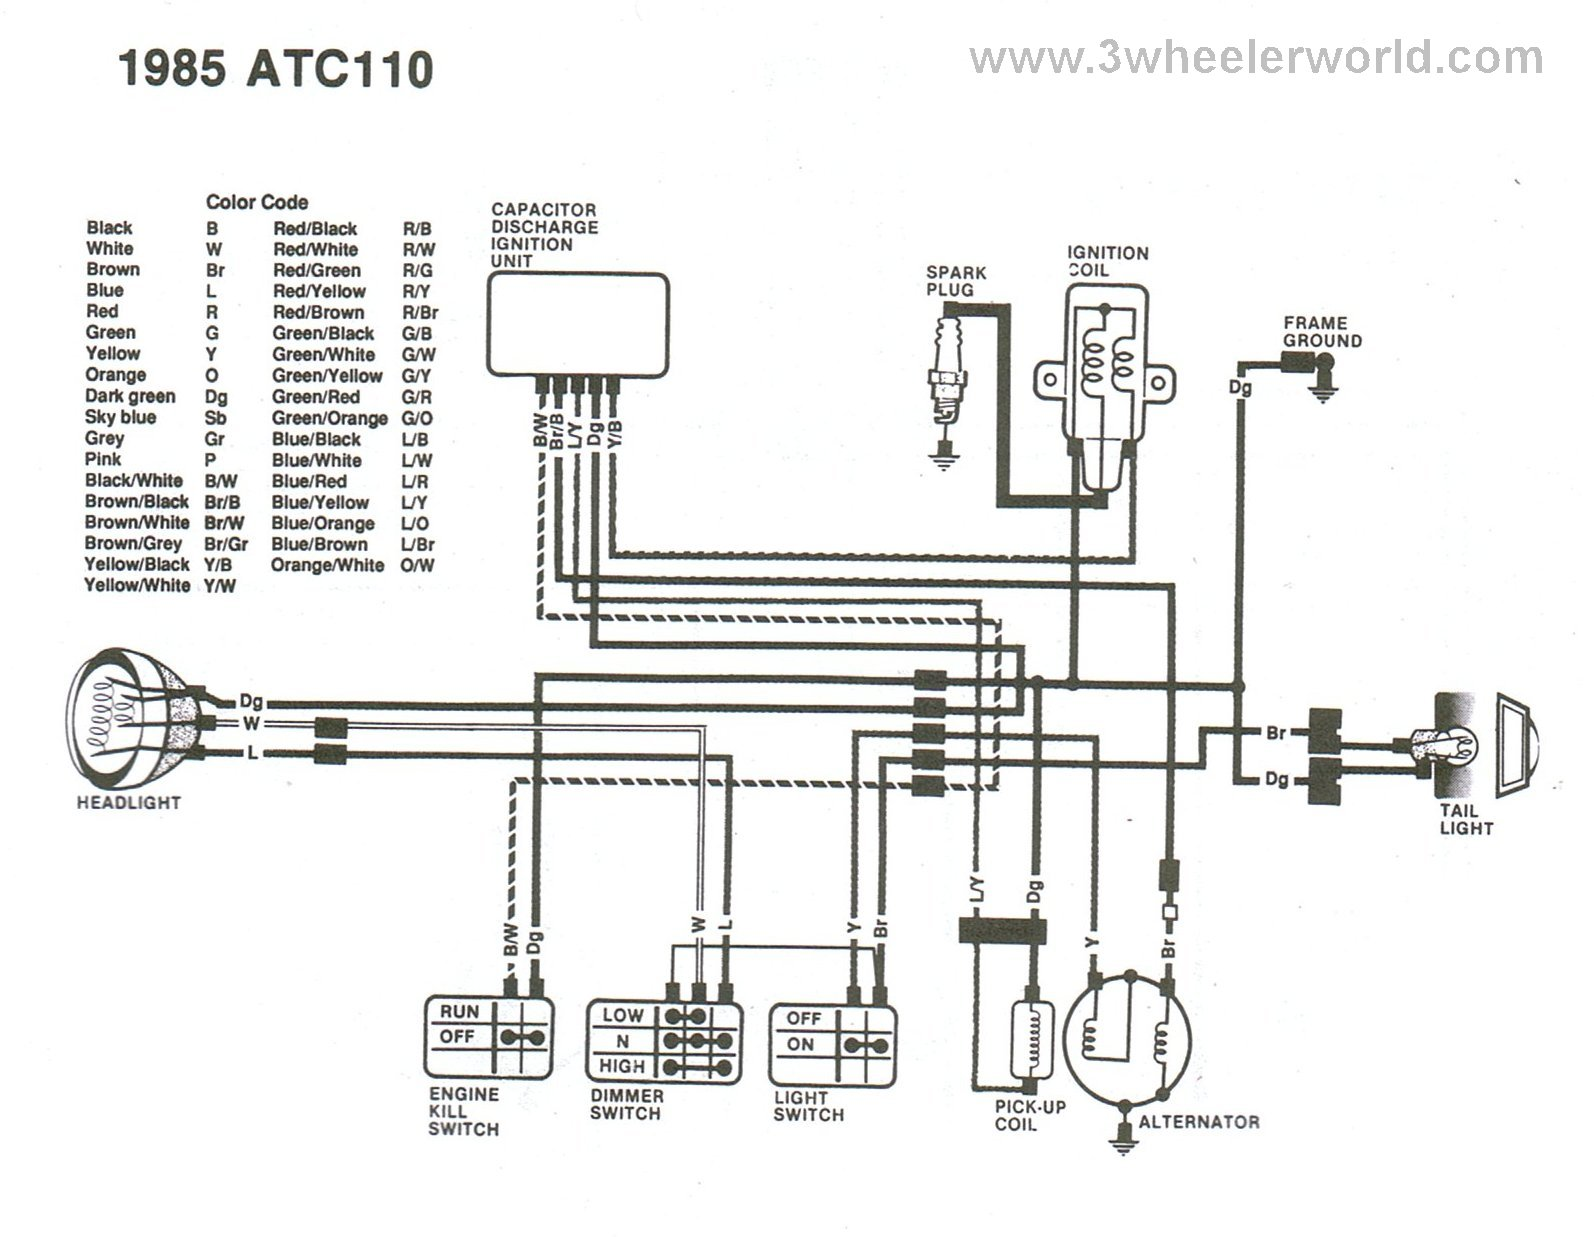 WiringHonda on parts diagram chinese atv wiring diagrams roketa